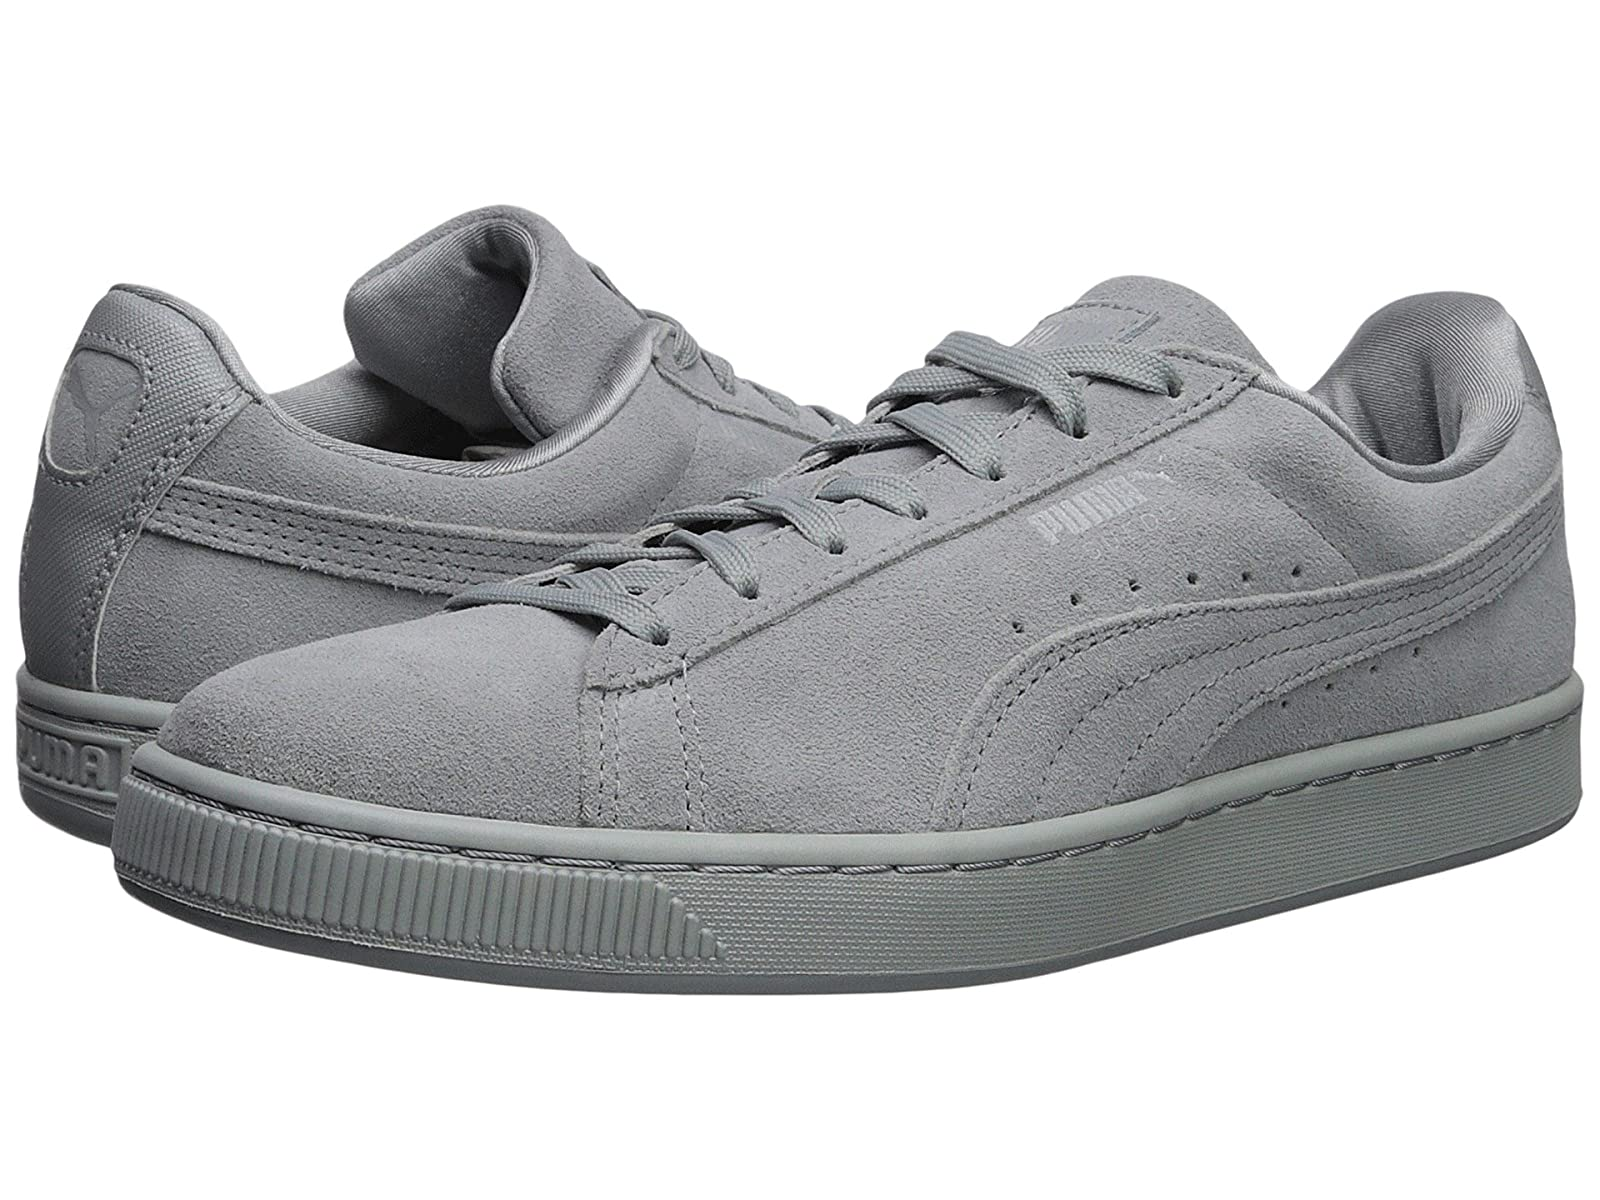 PUMA Suede Classic AnodizedCheap and distinctive eye-catching shoes